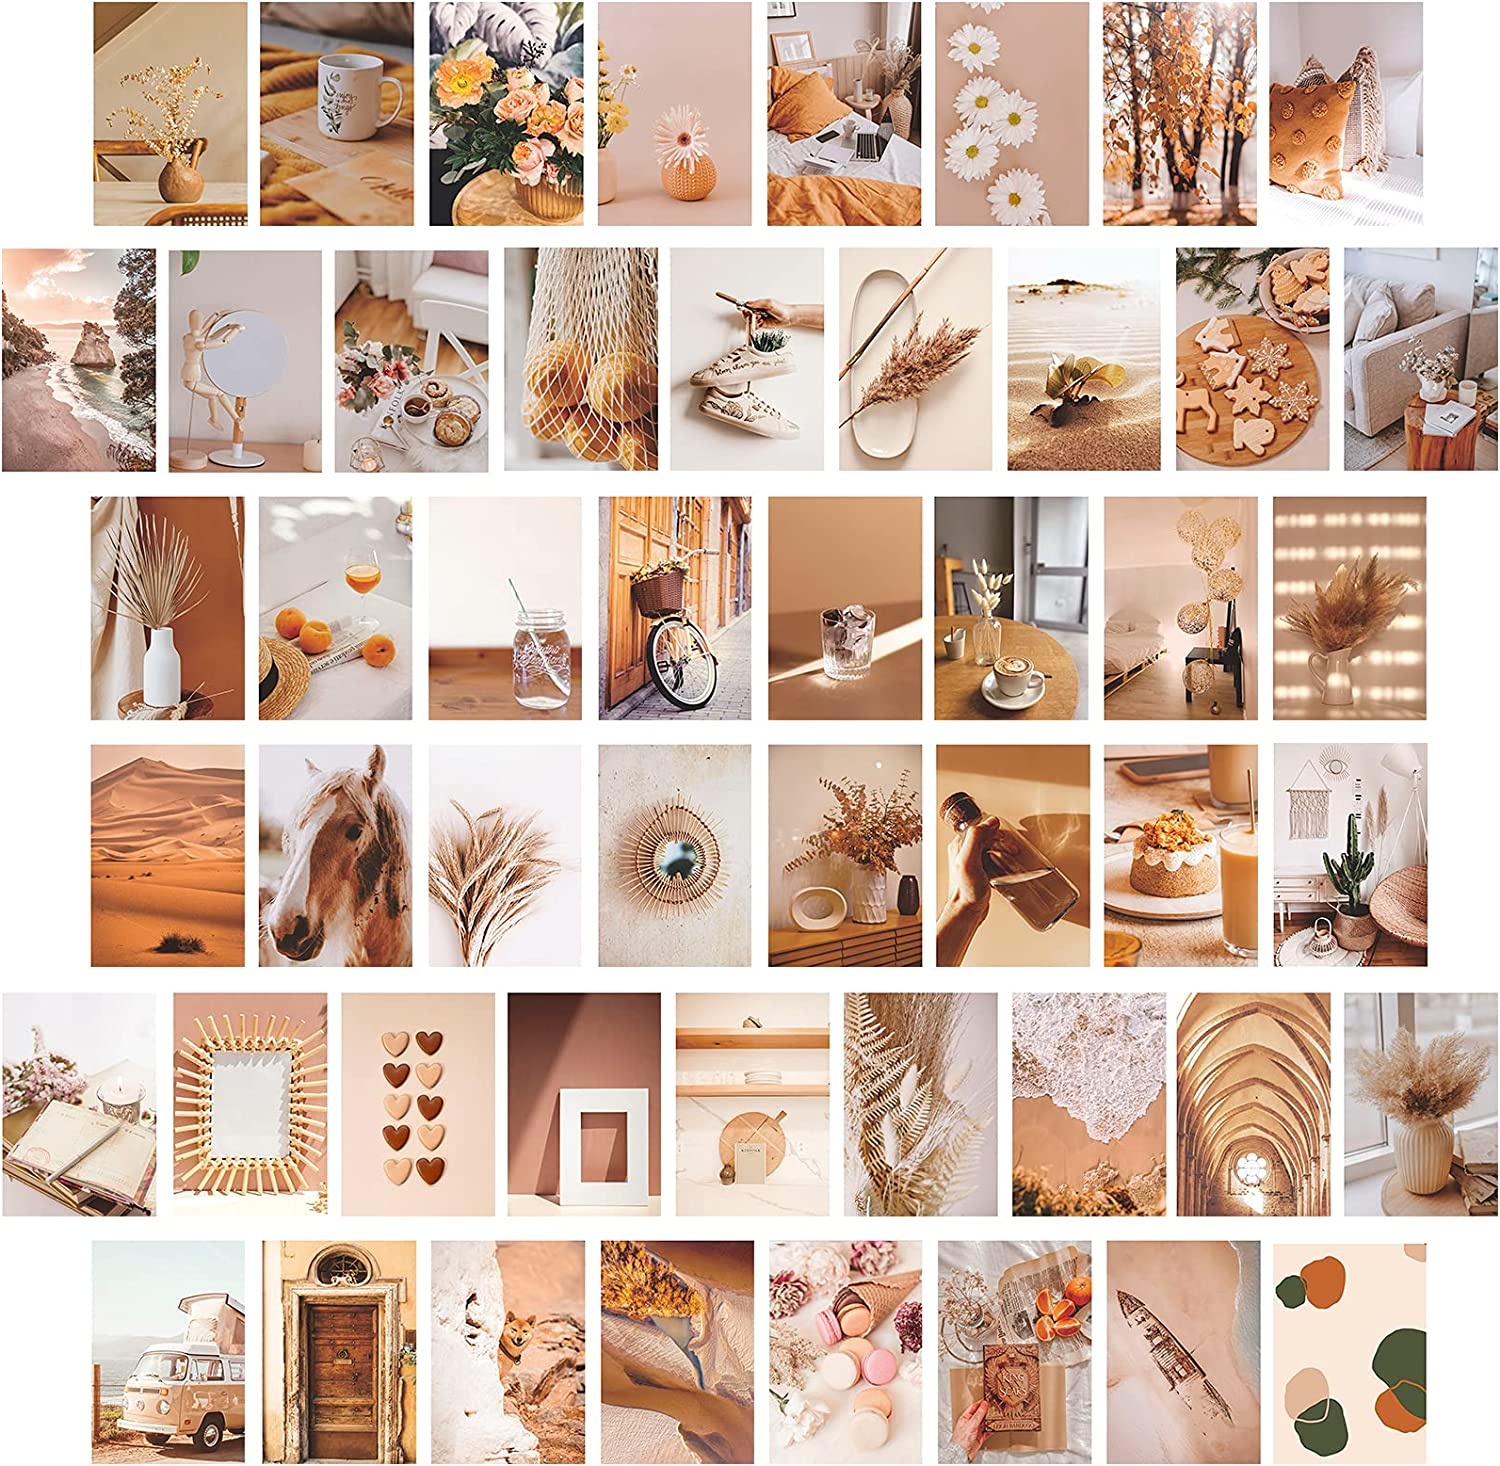 Wall Collage Kit for Aesthetic Pictures 50pcs, 4x6 inch,Boho Photo Posters Room Decors for Bedroom Livingroom for Teens Girls